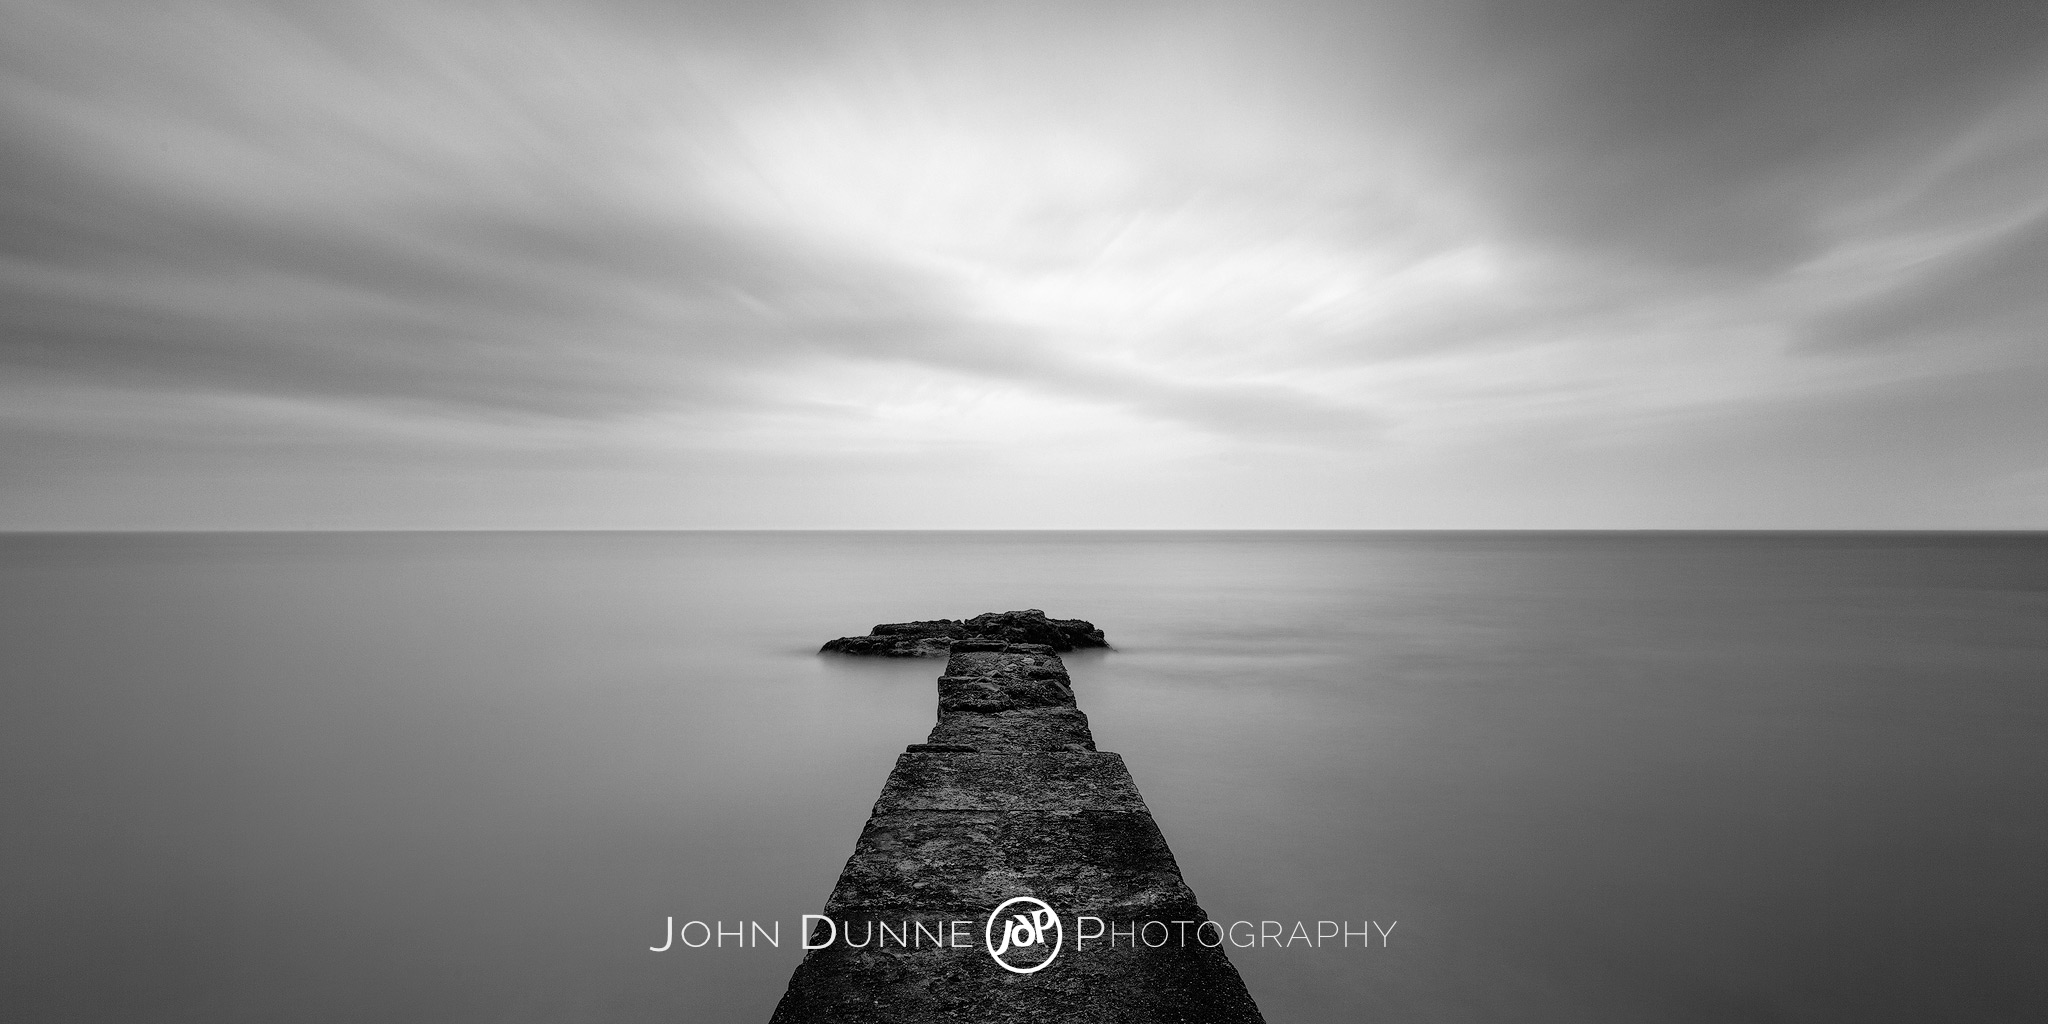 Upon Waters Edge by John Dunne.